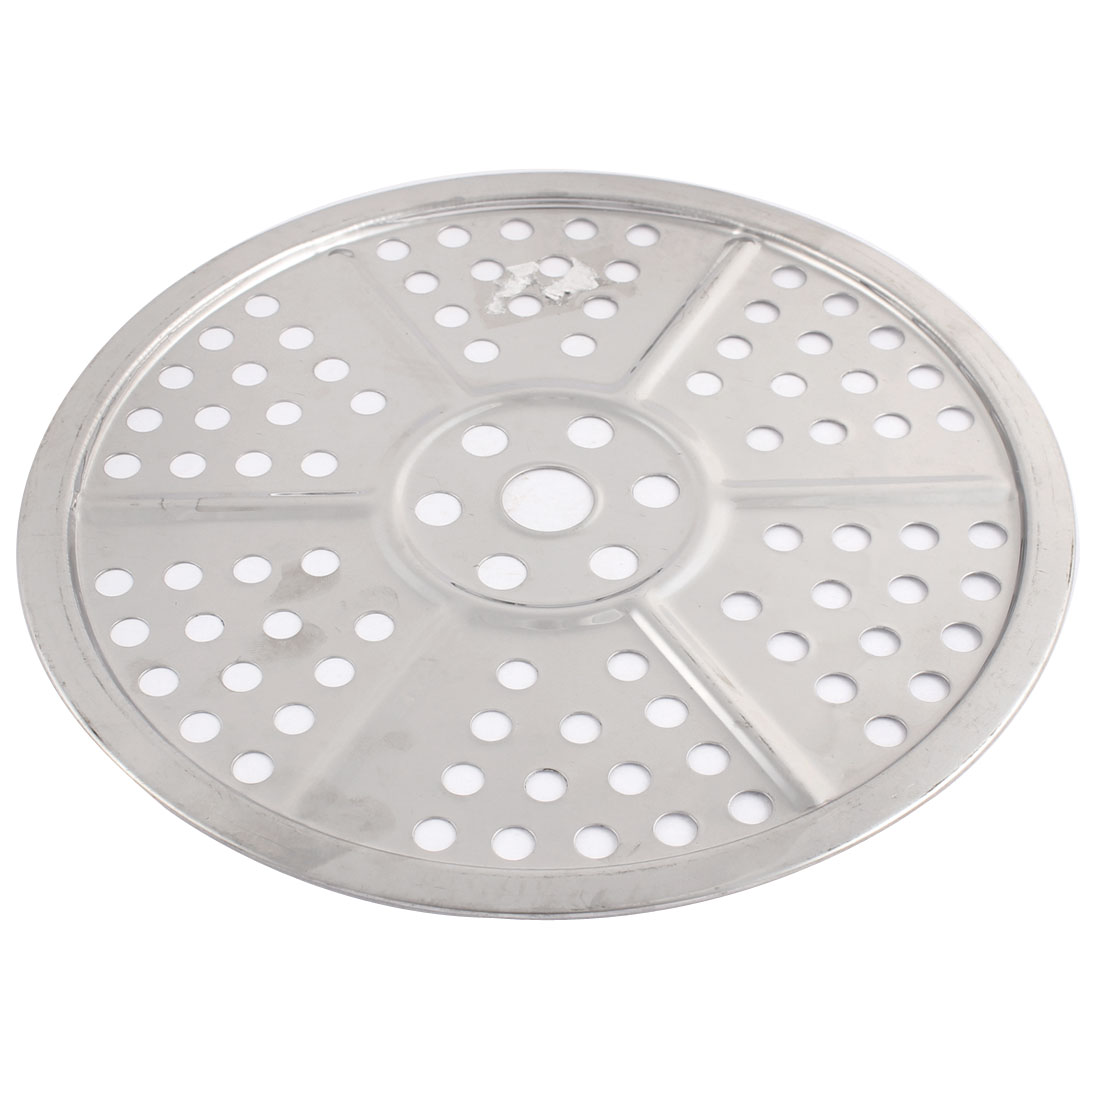 Kitchenware 22cm Dia Metal Round Shaped Food Cooking Steamer Steaming Rack Plate